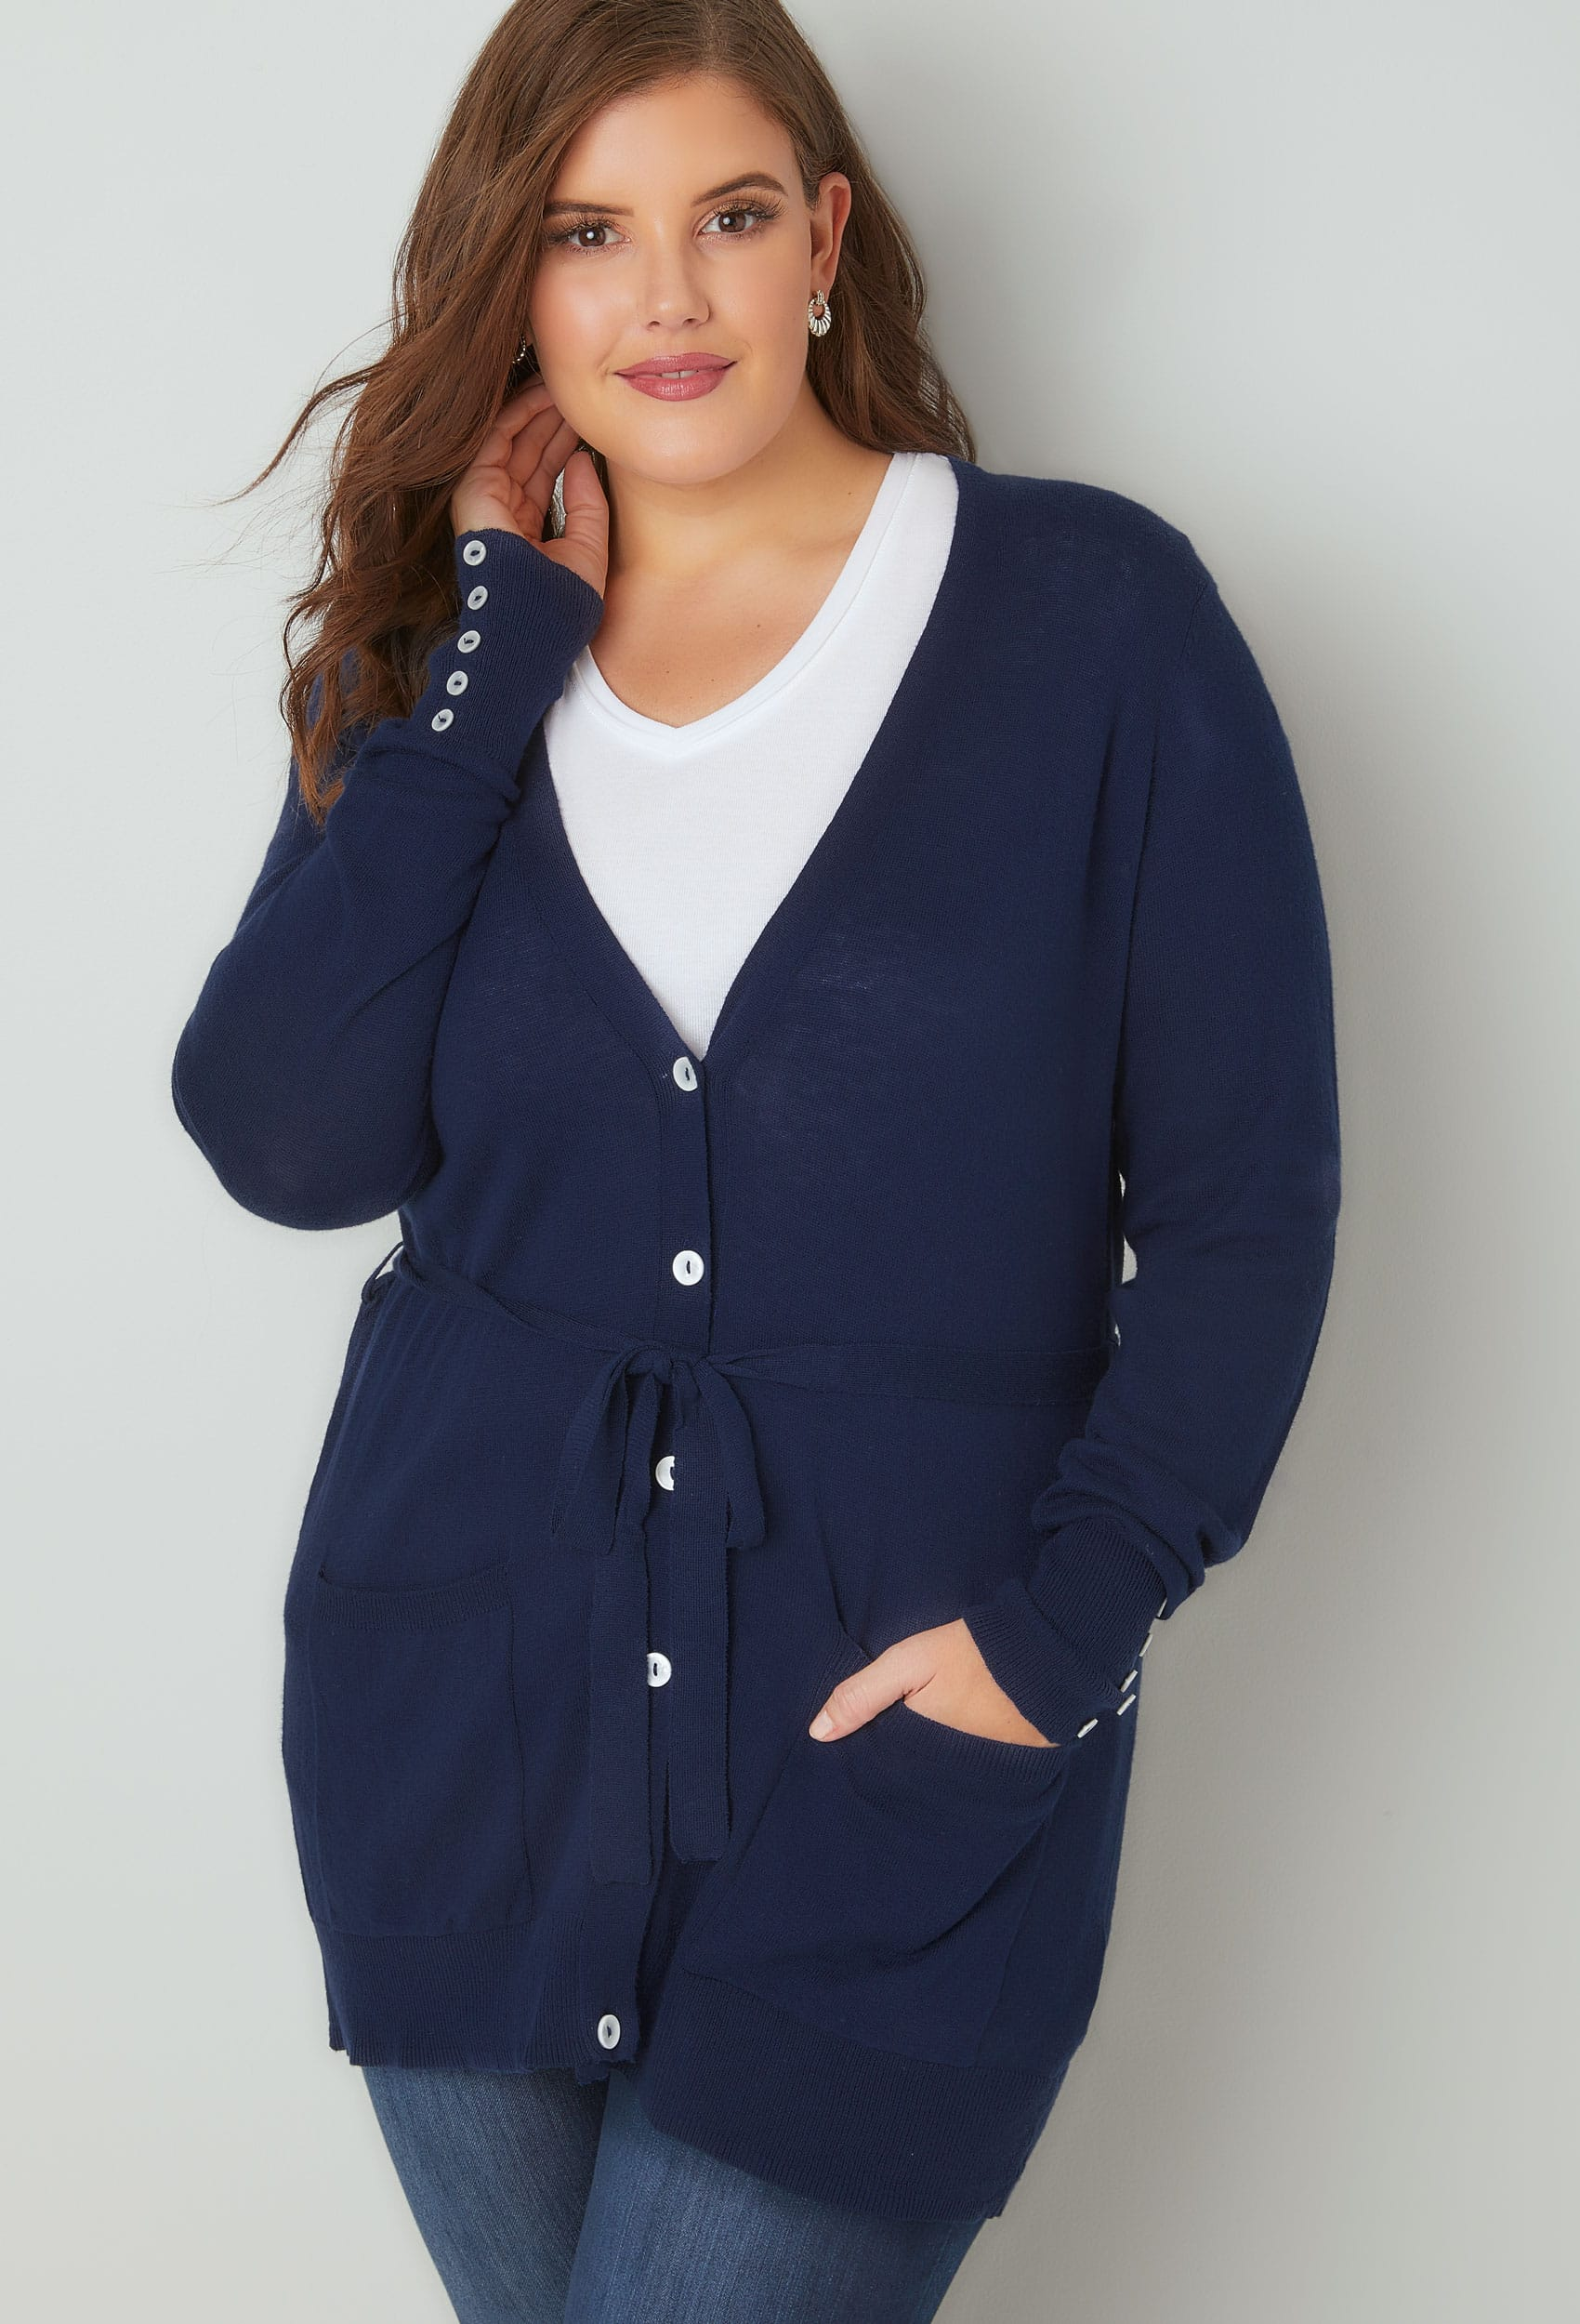 Navy Belted Boyfriend Cardigan, Plus size 16 to 36